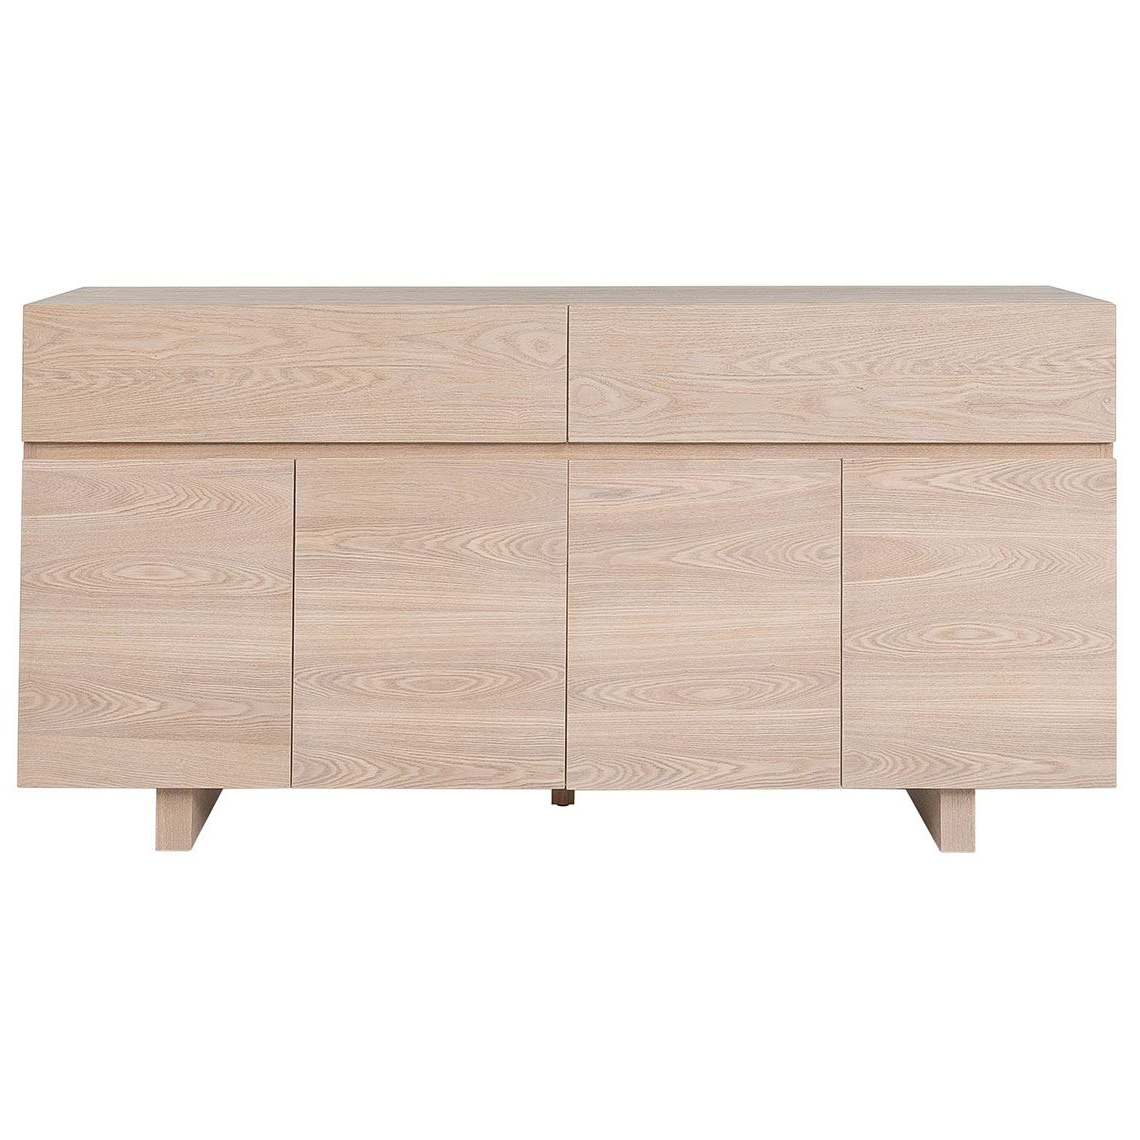 Well Known 4 Door 3 Drawer White Wash Sideboards With Regard To Freedom Furniture And Homewares (View 17 of 20)